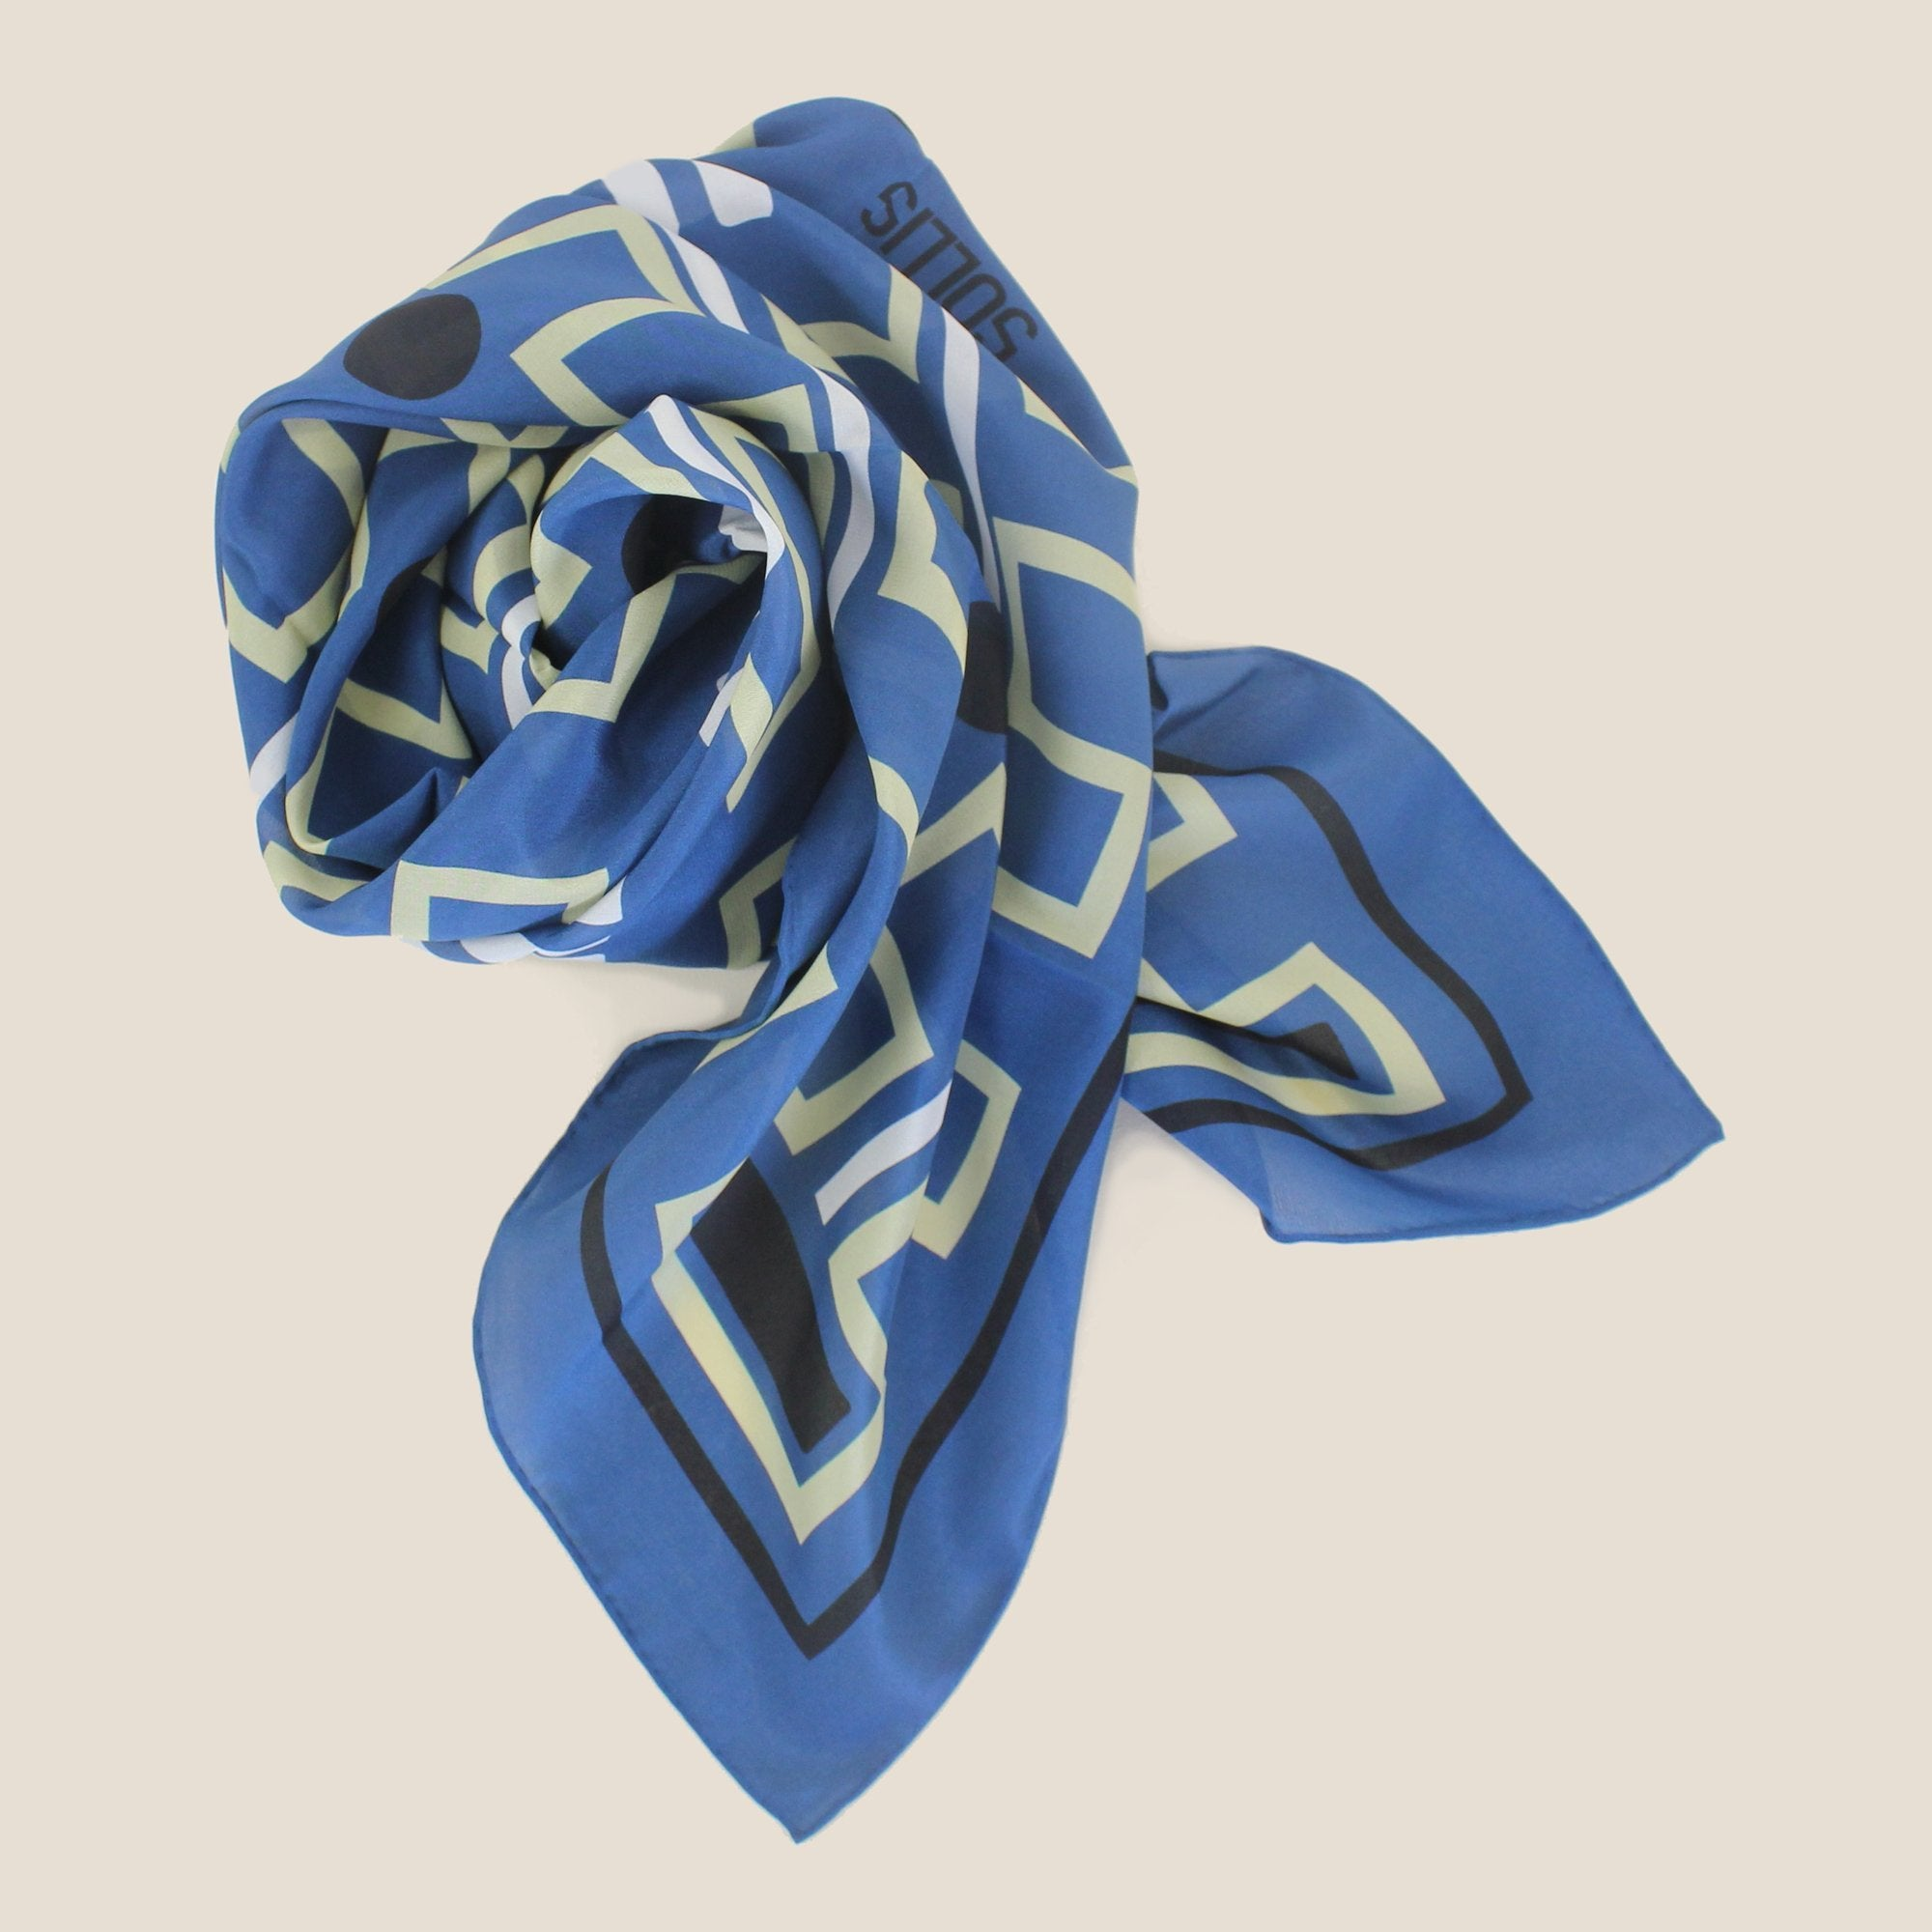 SILK SCARF - 'ZIG' design - 60% OFF